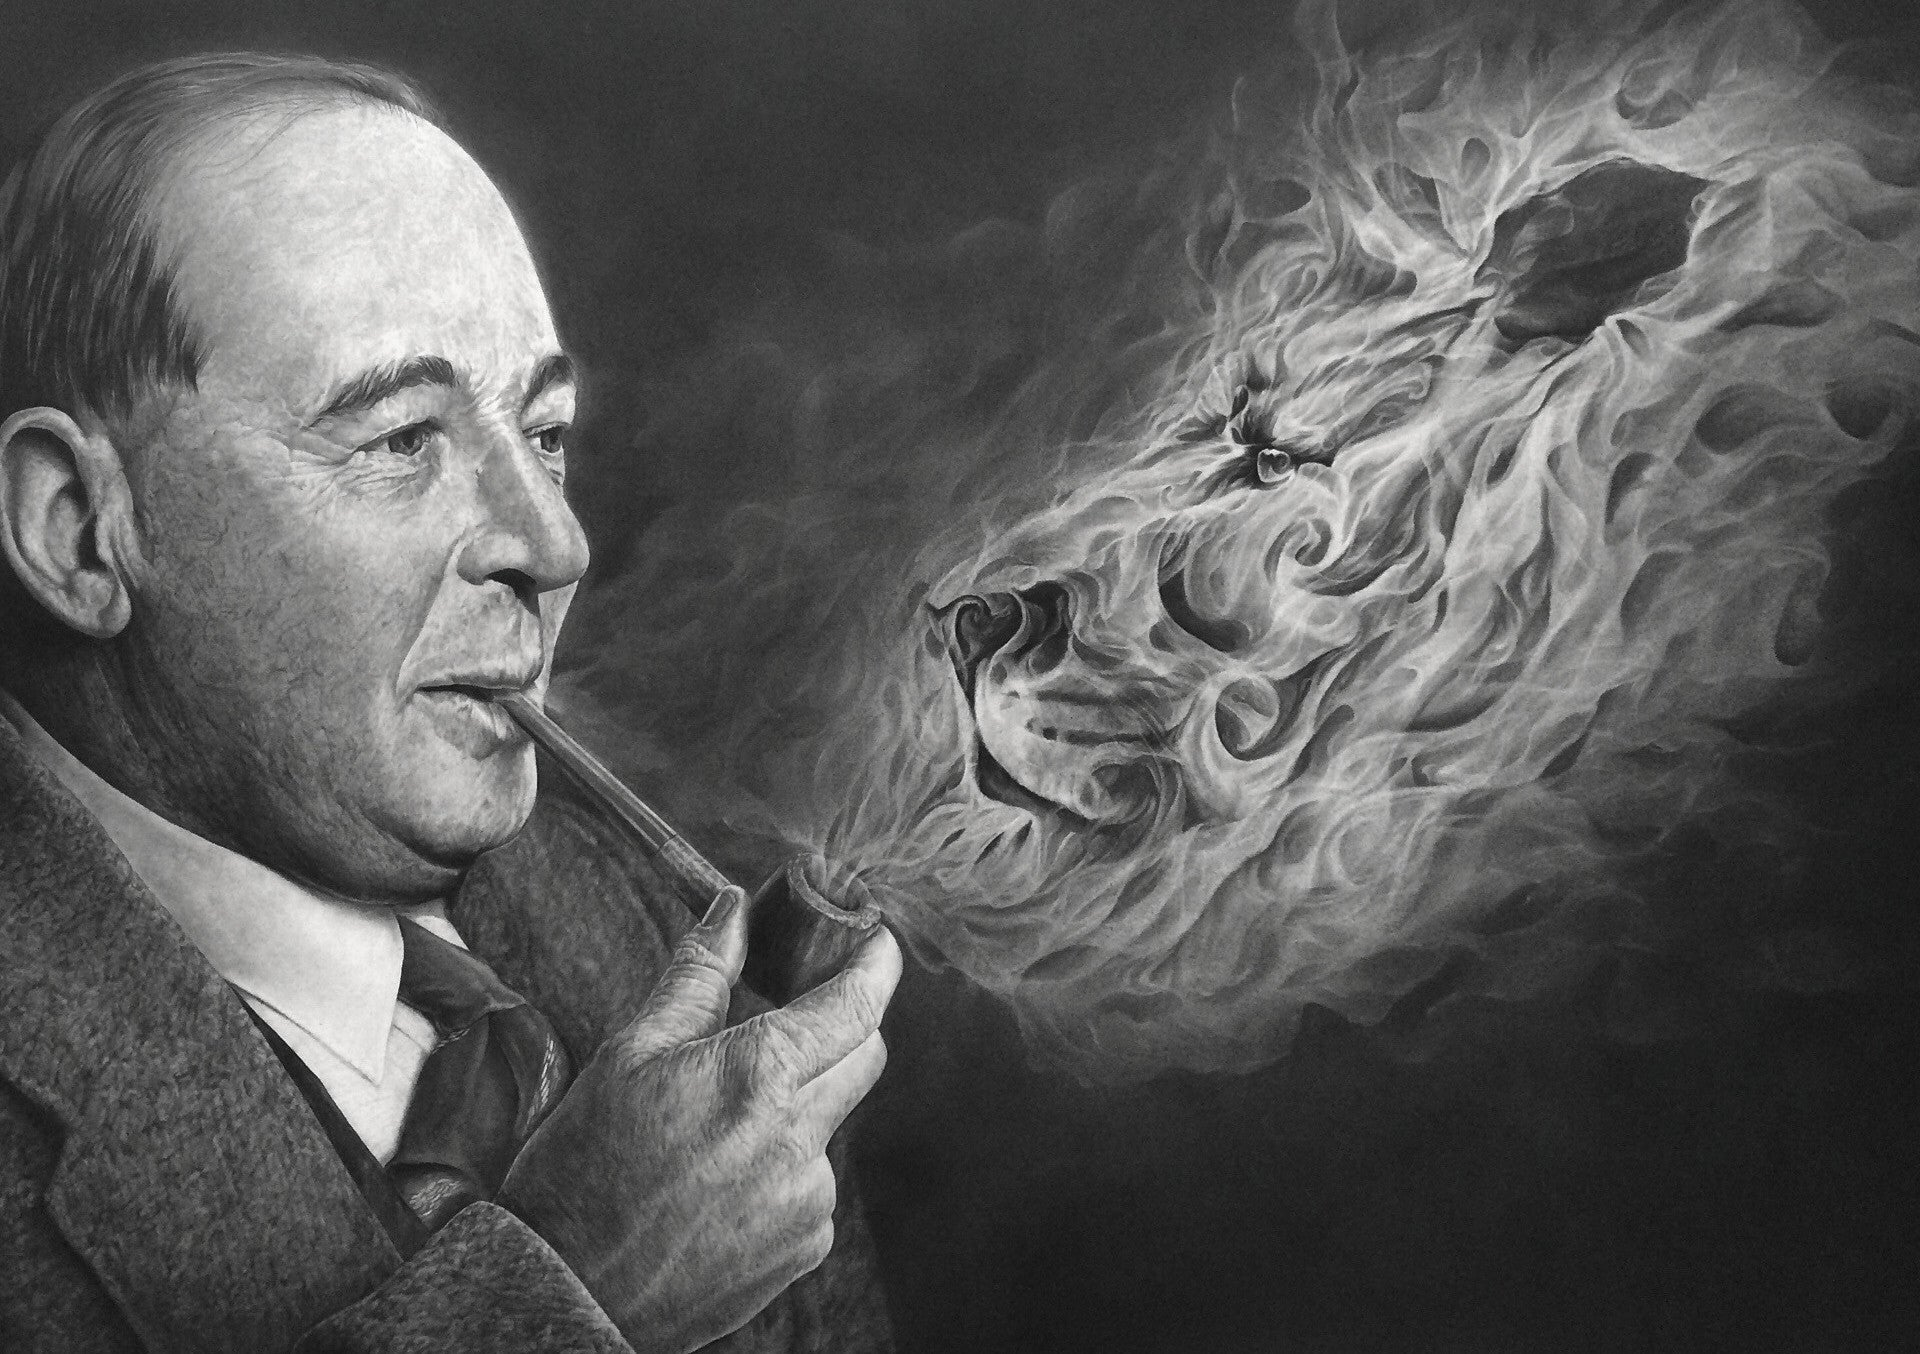 c s lewis essays Most people know cs lewis through his narnian chronicles or his theology books, such as mere christianity, the screwtape letters, or the great divorce but beyond his stories and books, we shouldn't forget his essays lewis was one of the most clear and insightful essayists of the twentieth century.